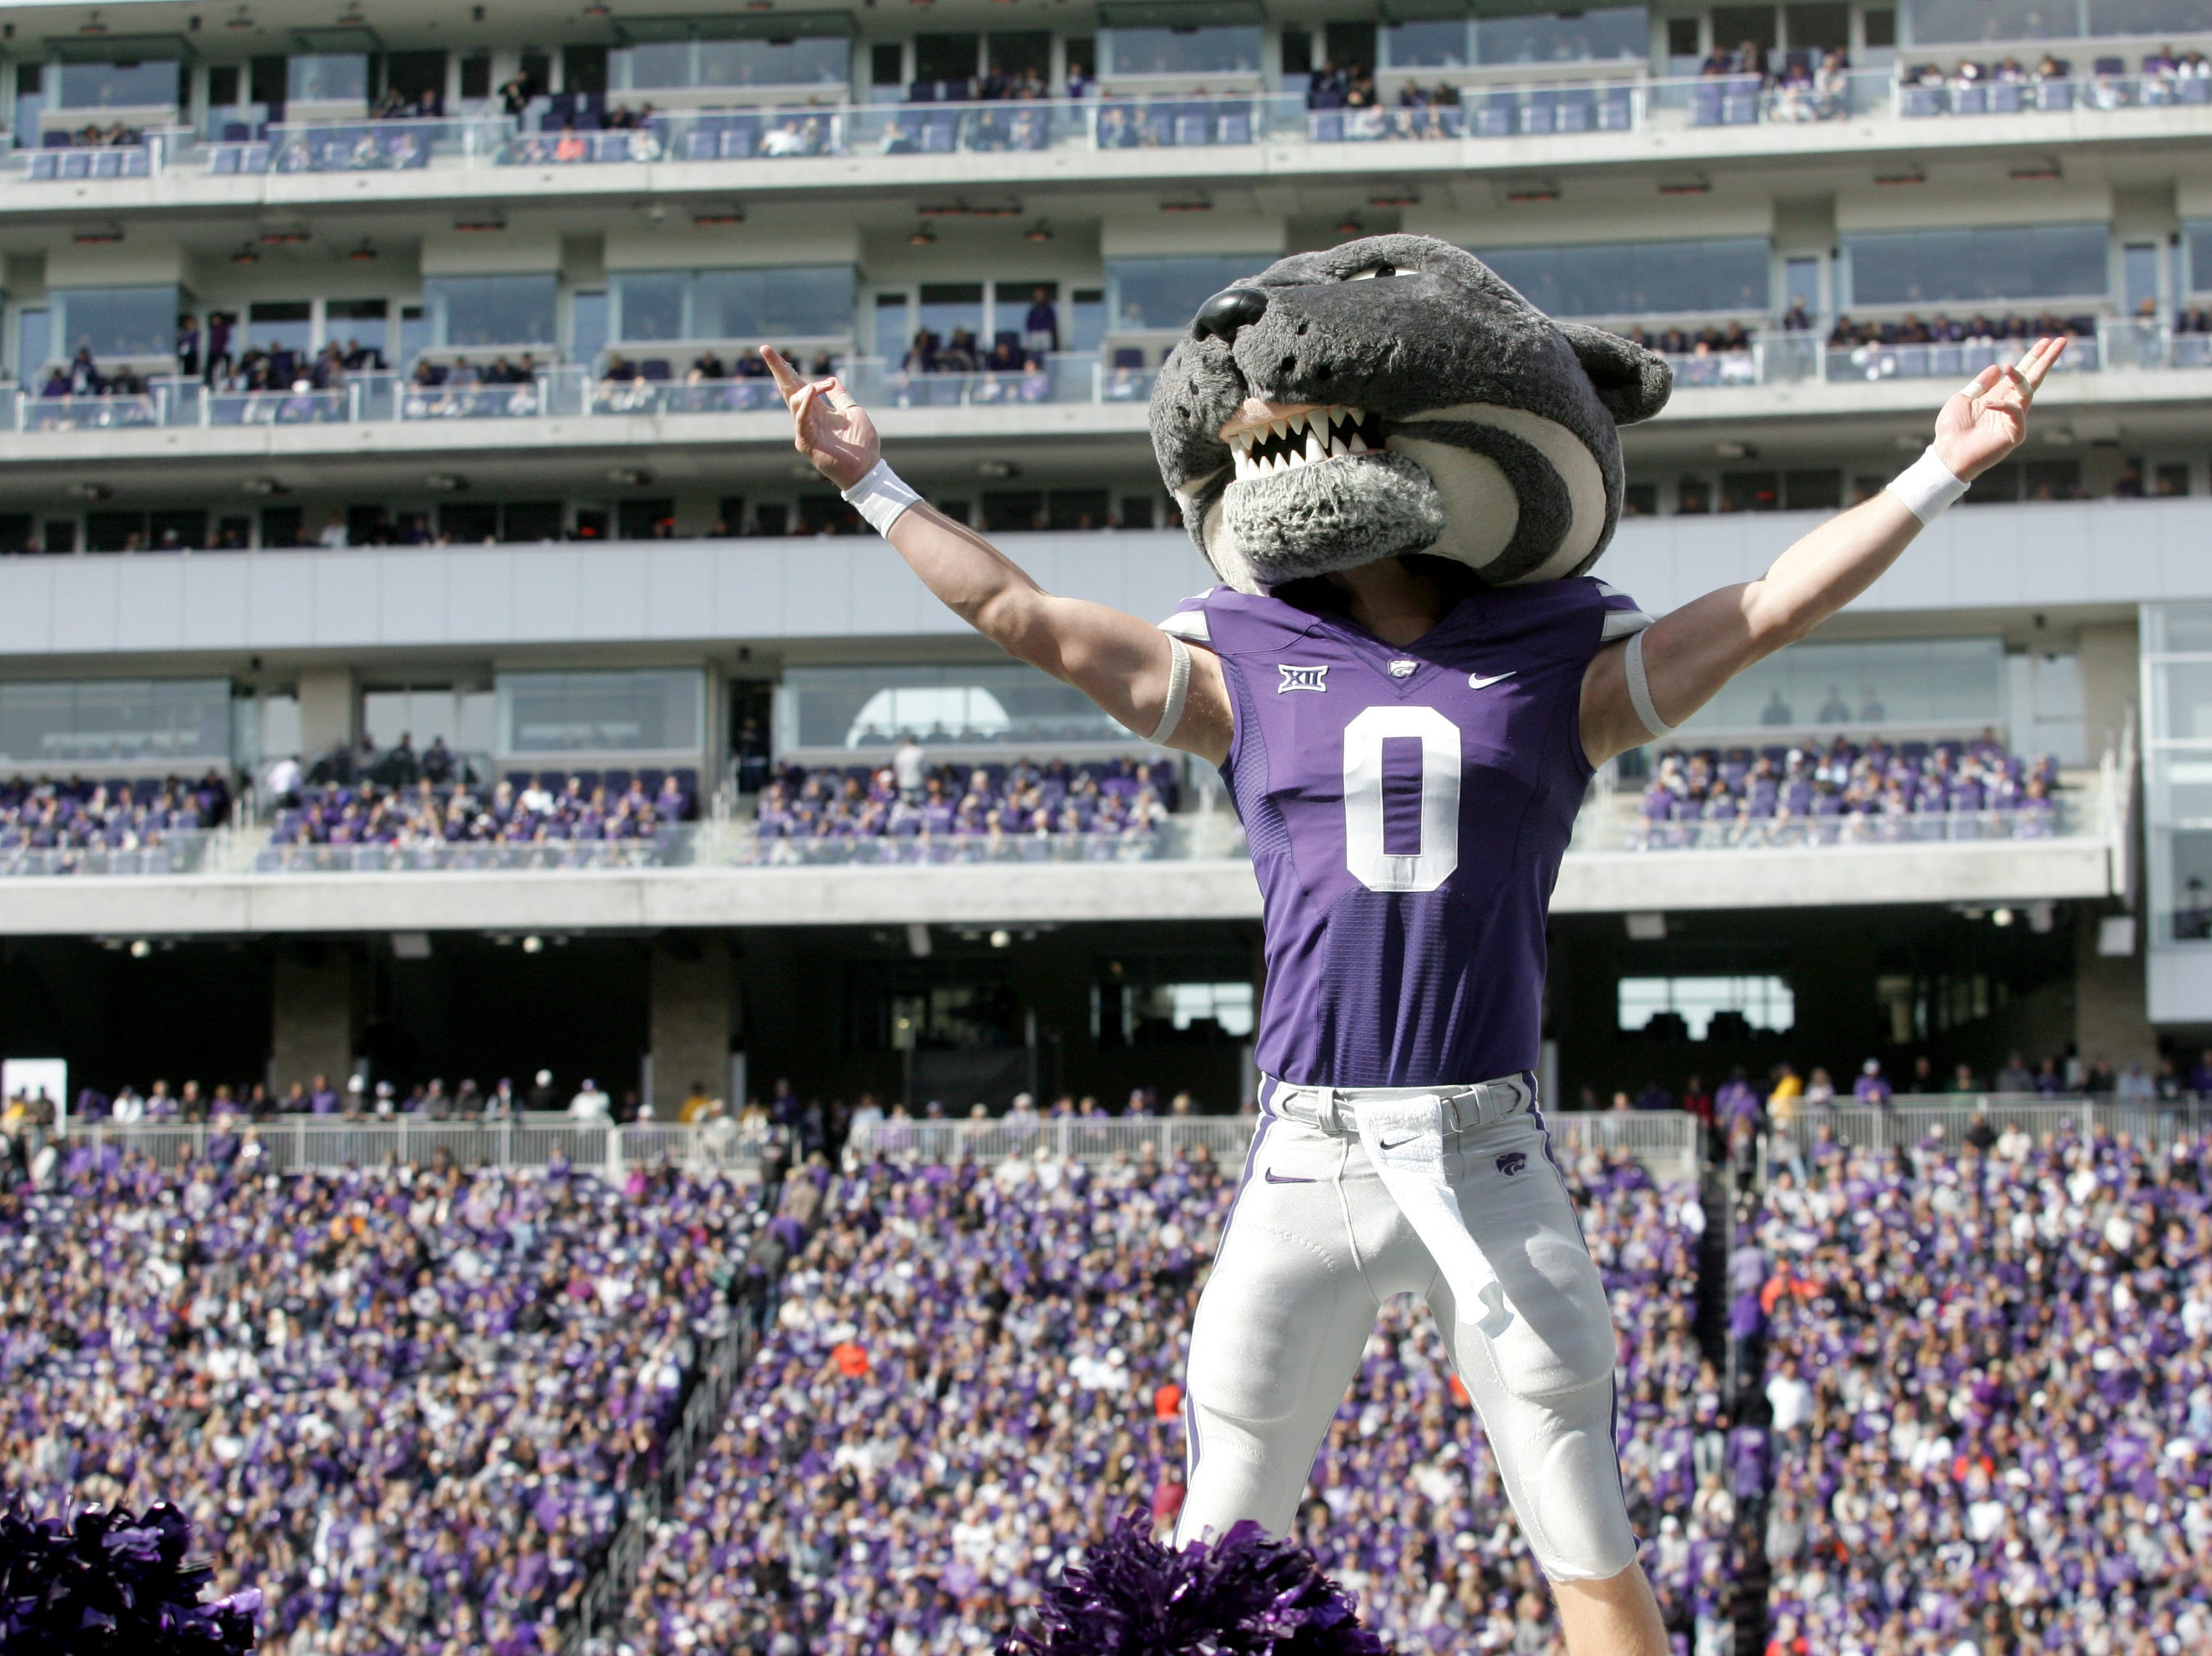 Week 7: Kansas State Wildcats mascot Willie the Wildcat celebrates during a game against the Oklahoma State Cowboys at Bill Snyder Family Stadium.